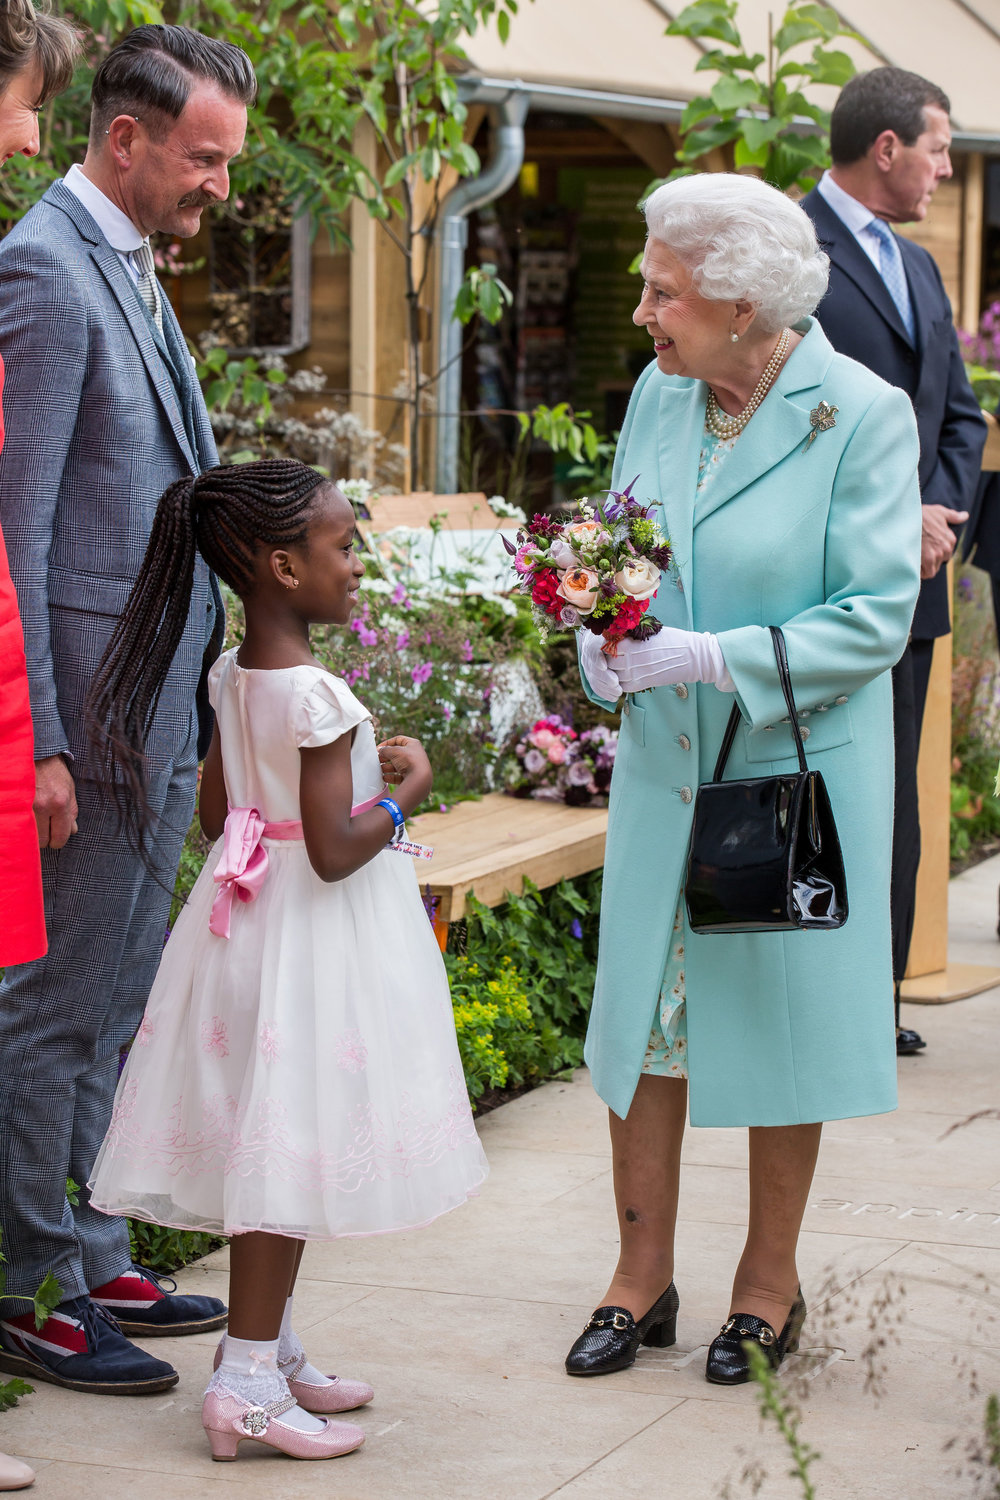 Meeting Her Majesty the Queen at the RHS Chelsea Flower Show